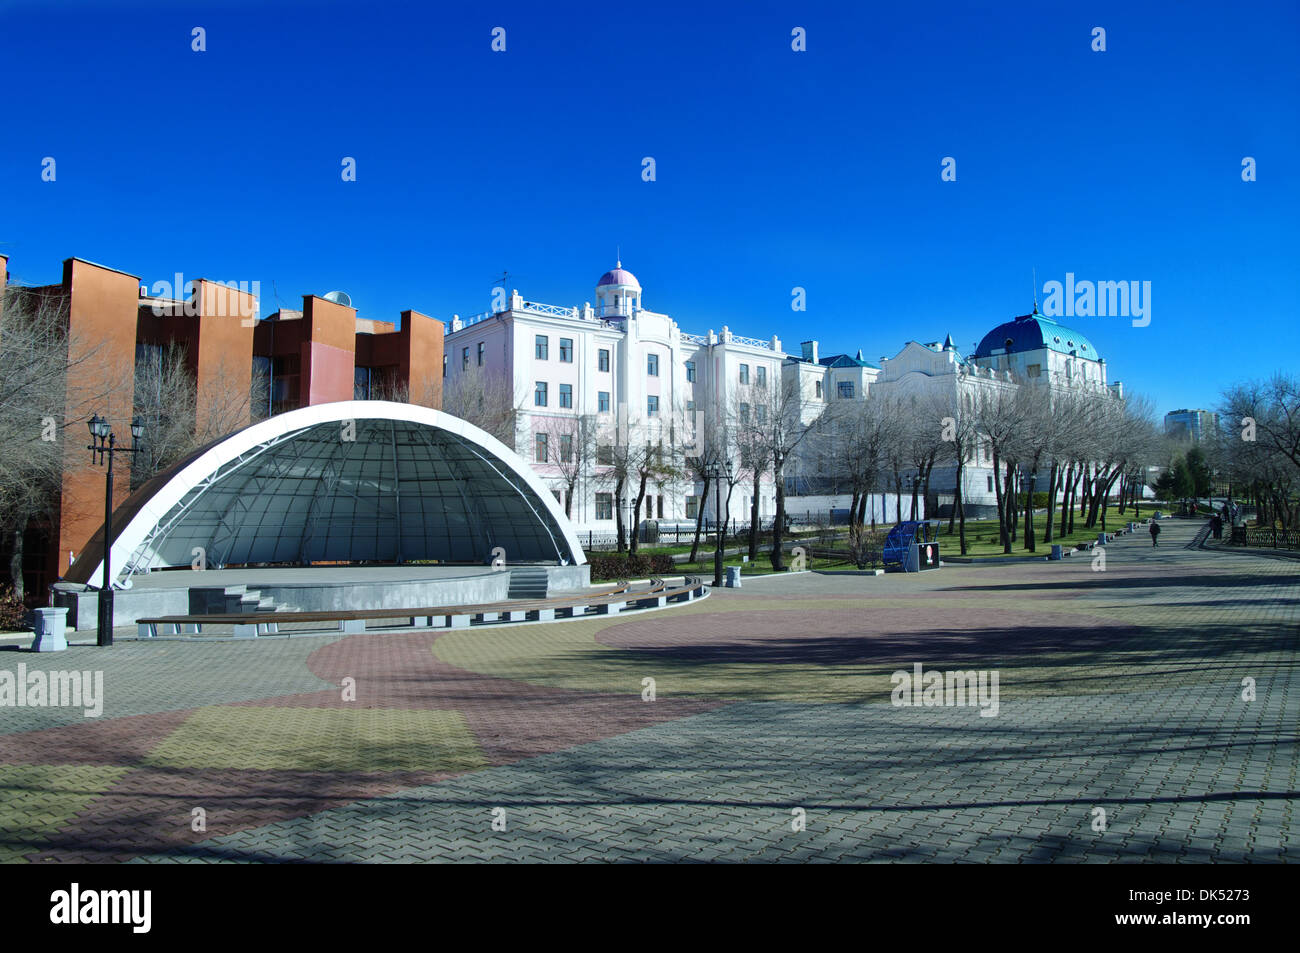 empty summer scene on the waterfront of the Amur Khabarovsk, on the background of the city museum and Philharmonic - Stock Image